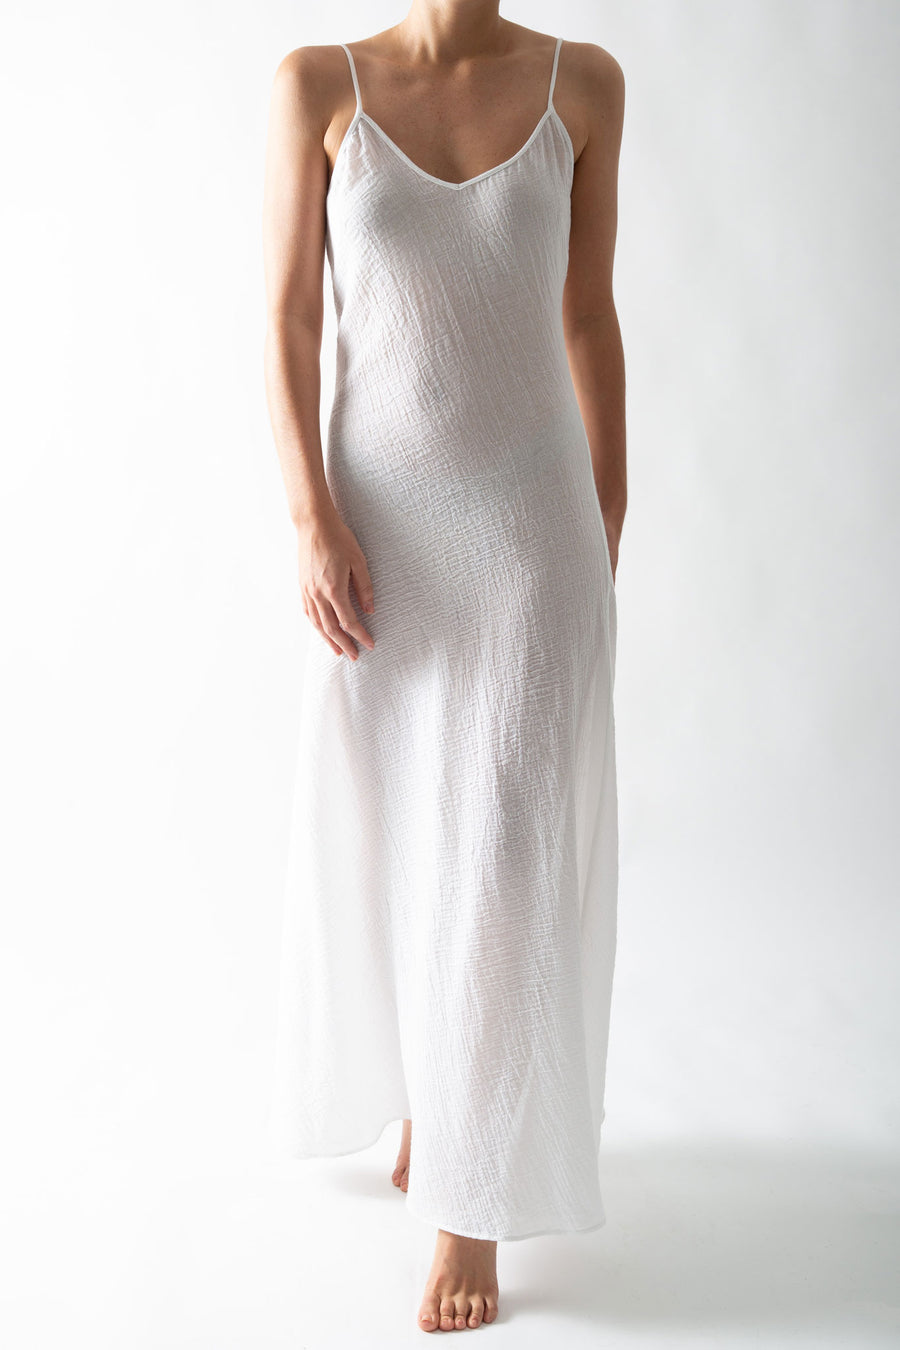 This is a photo of a woman wearing a sheer white slip dress in a cotton gauze material.